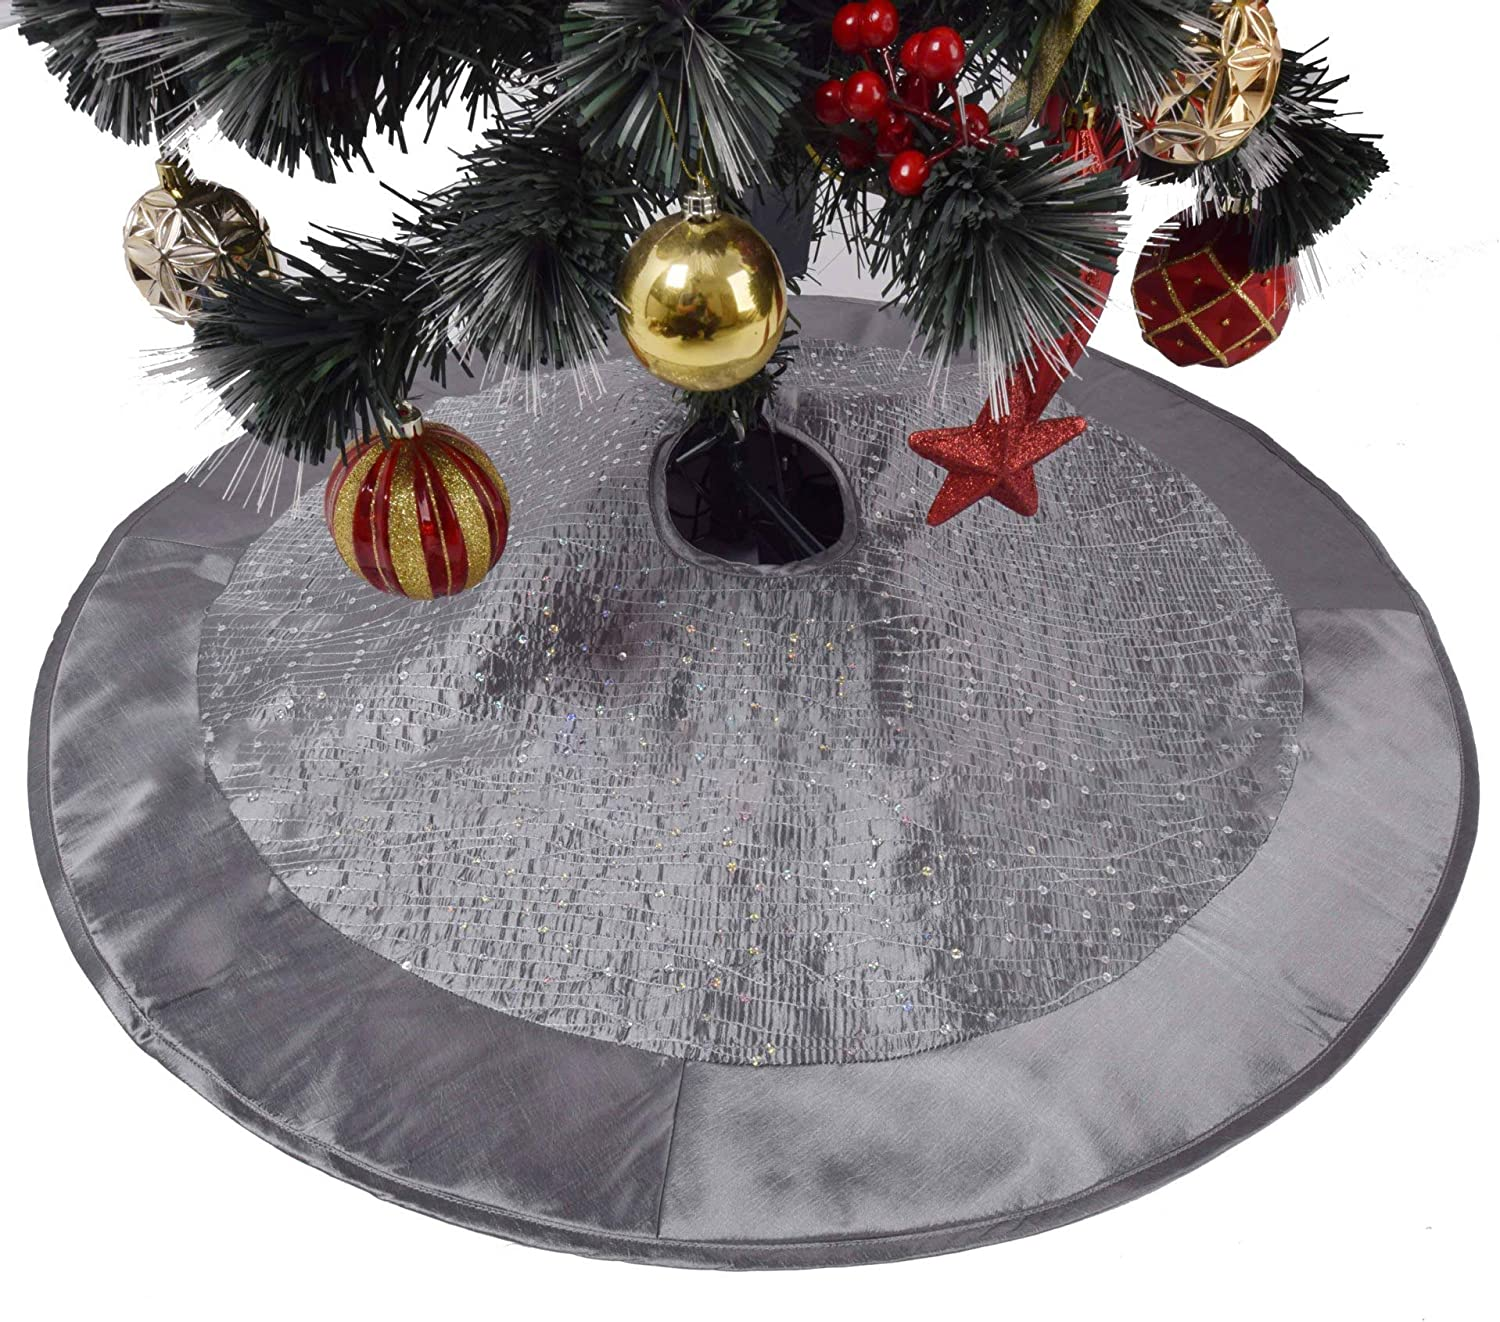 SOOFYLIA 36 inches Blue Sparkle Glitter Sequin Center Faux Silk Satin Border Christmas Tree Skirt Deluxe Christmas Decoration Indoor Outdoor Holiday Party Decor